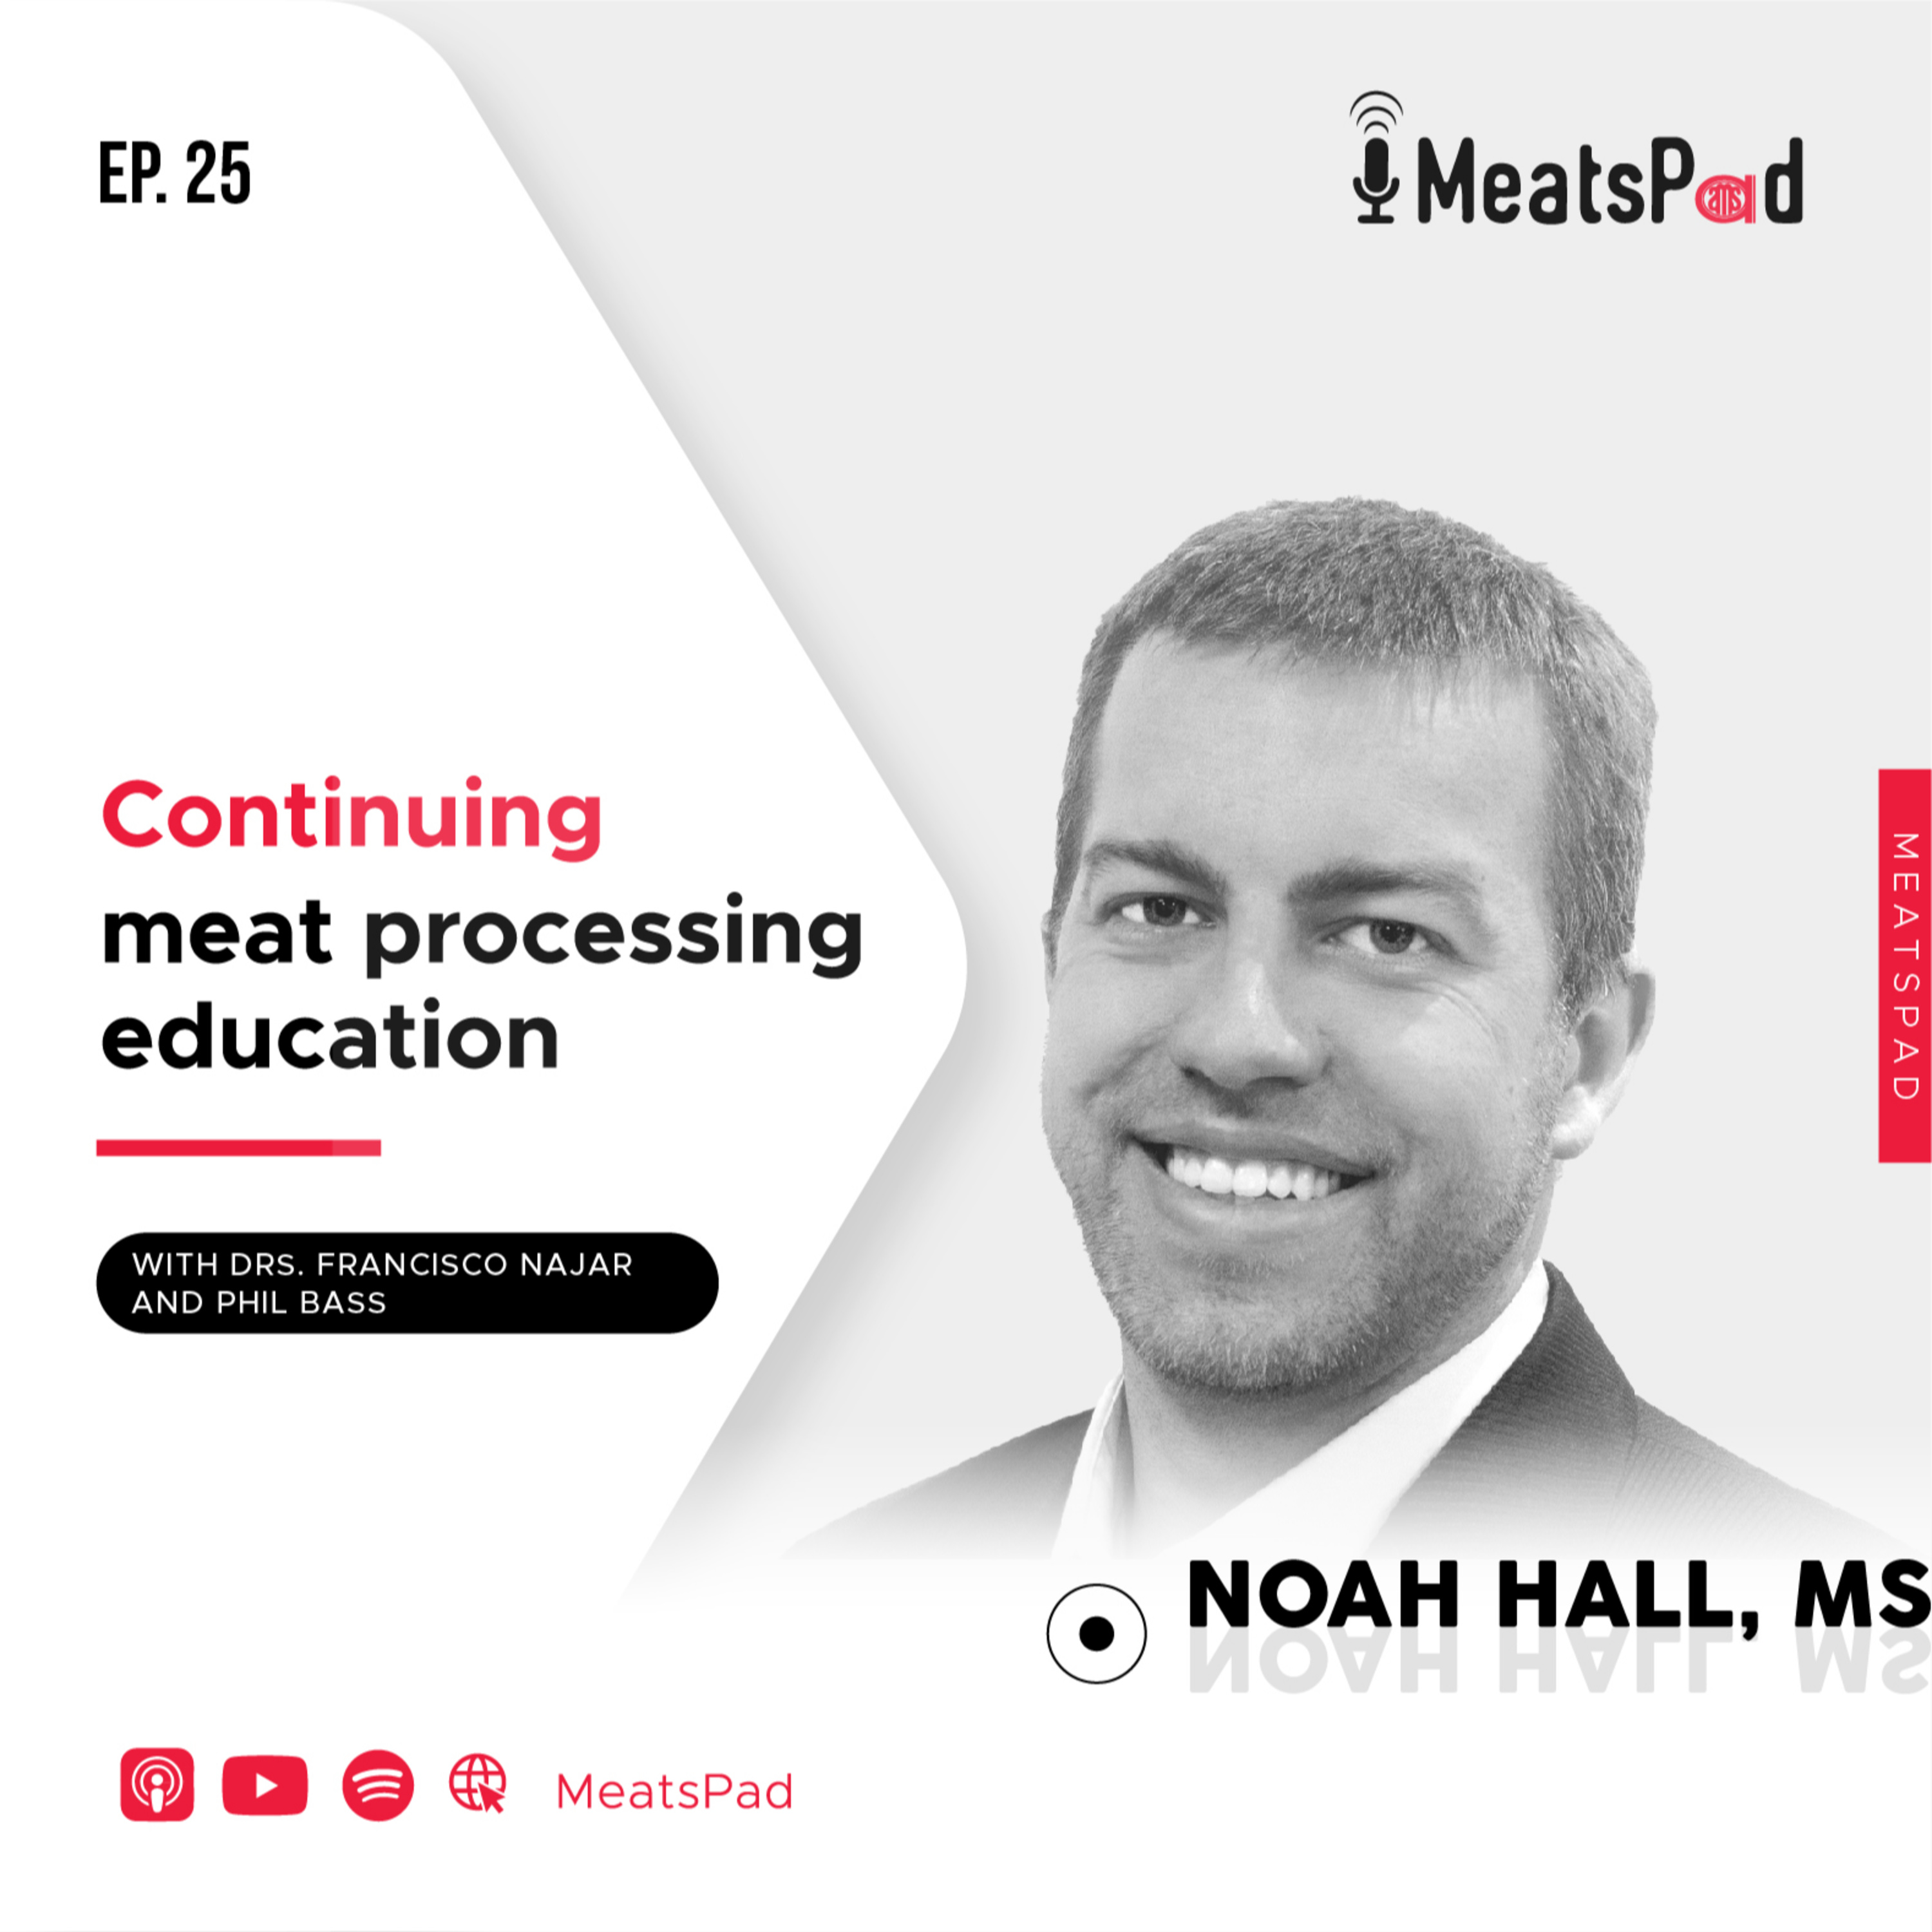 Continuing meat processing education - Noah Hall, MS